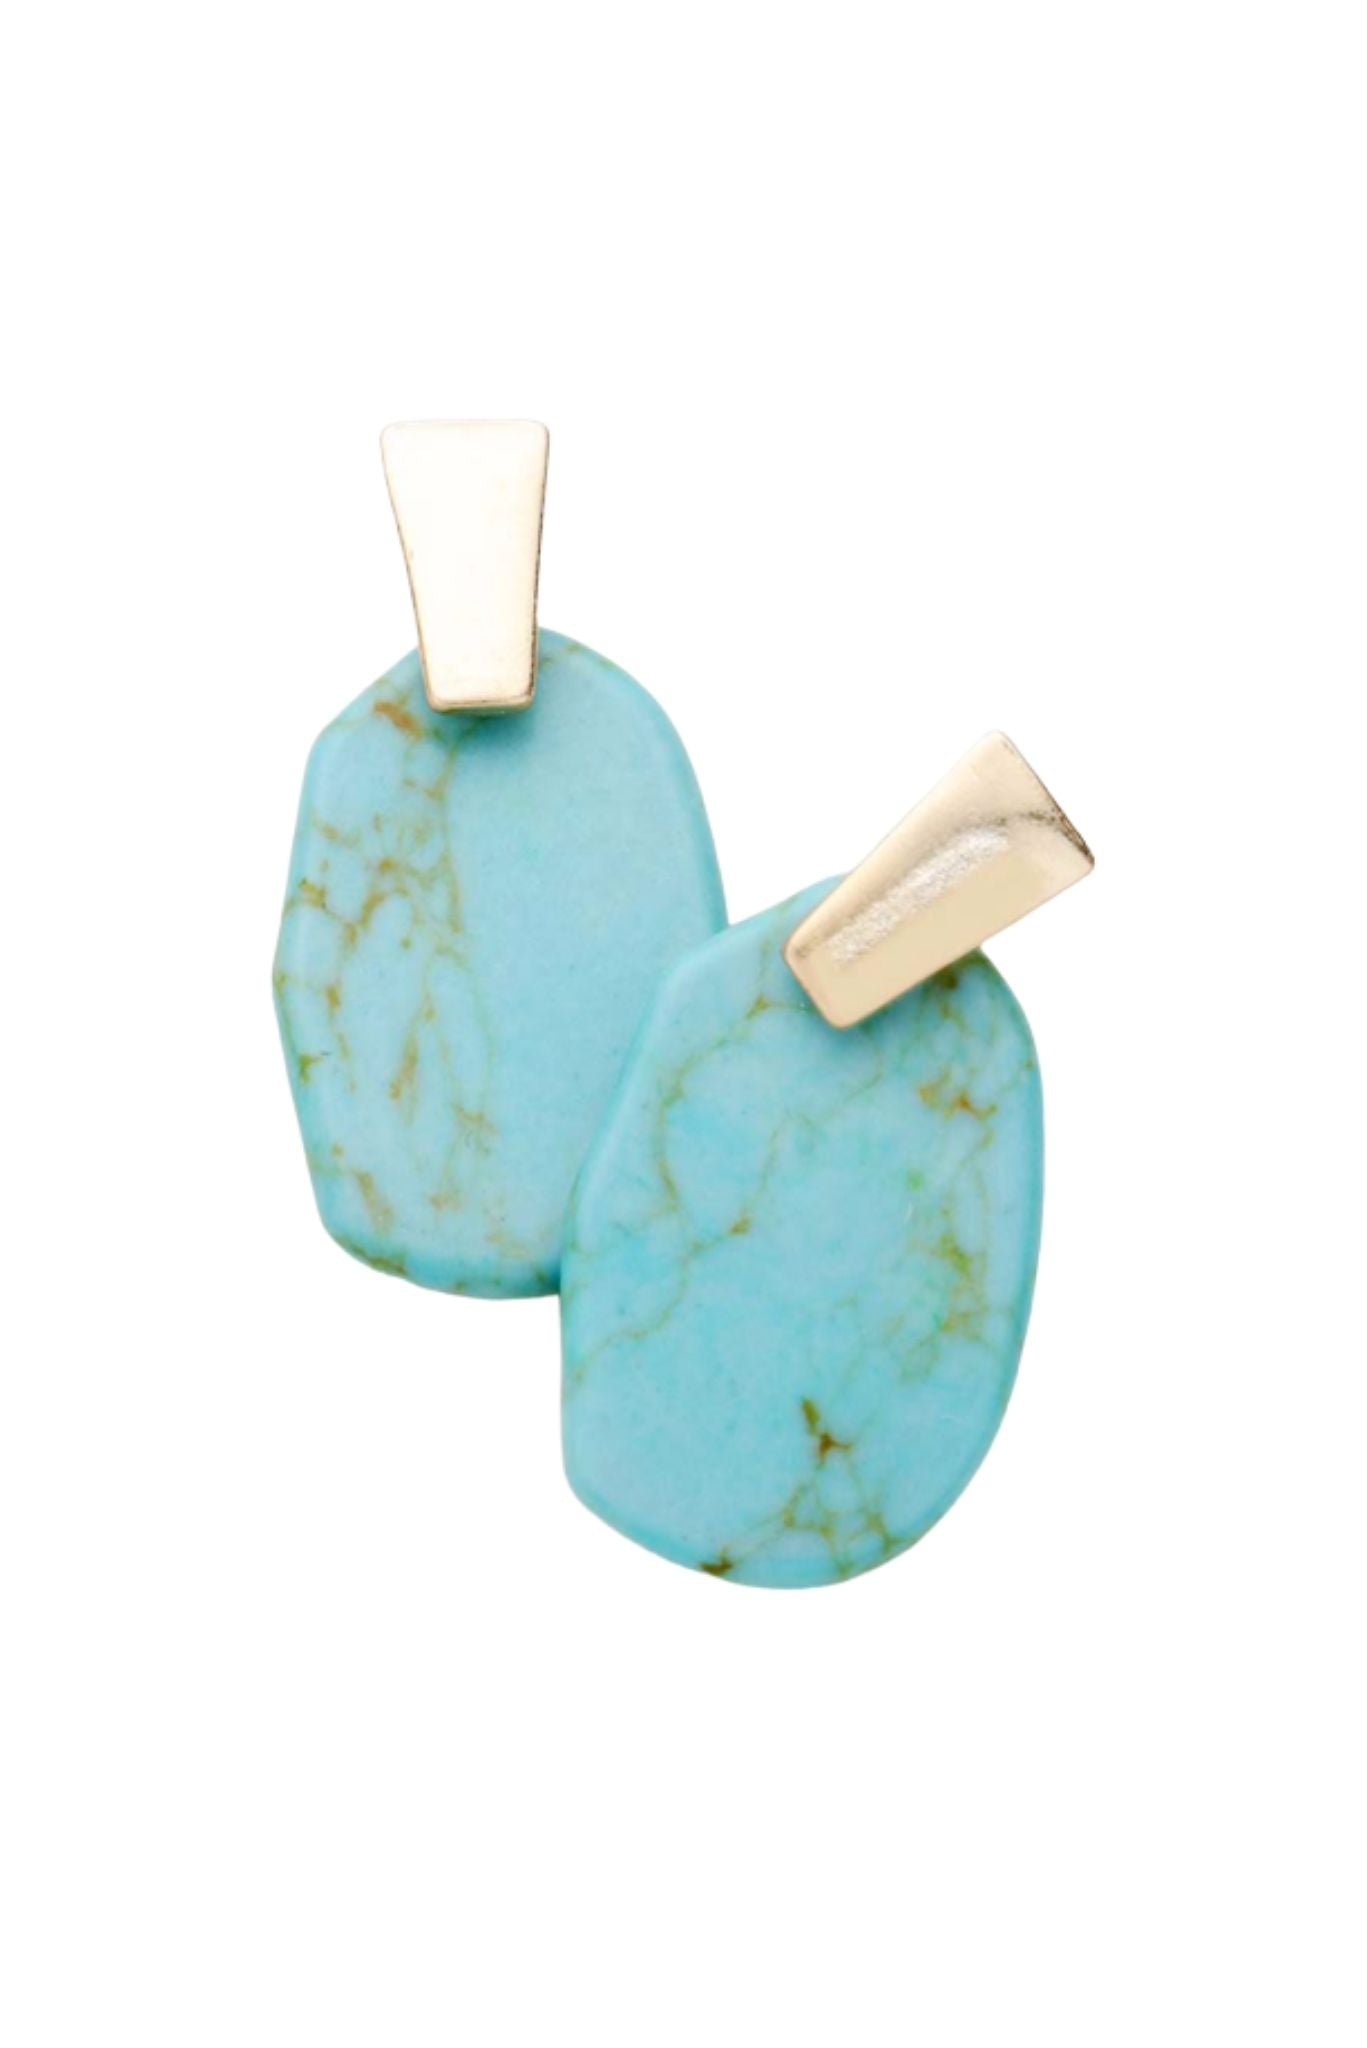 Gold Stud Earrings w/ Turquoise Stone